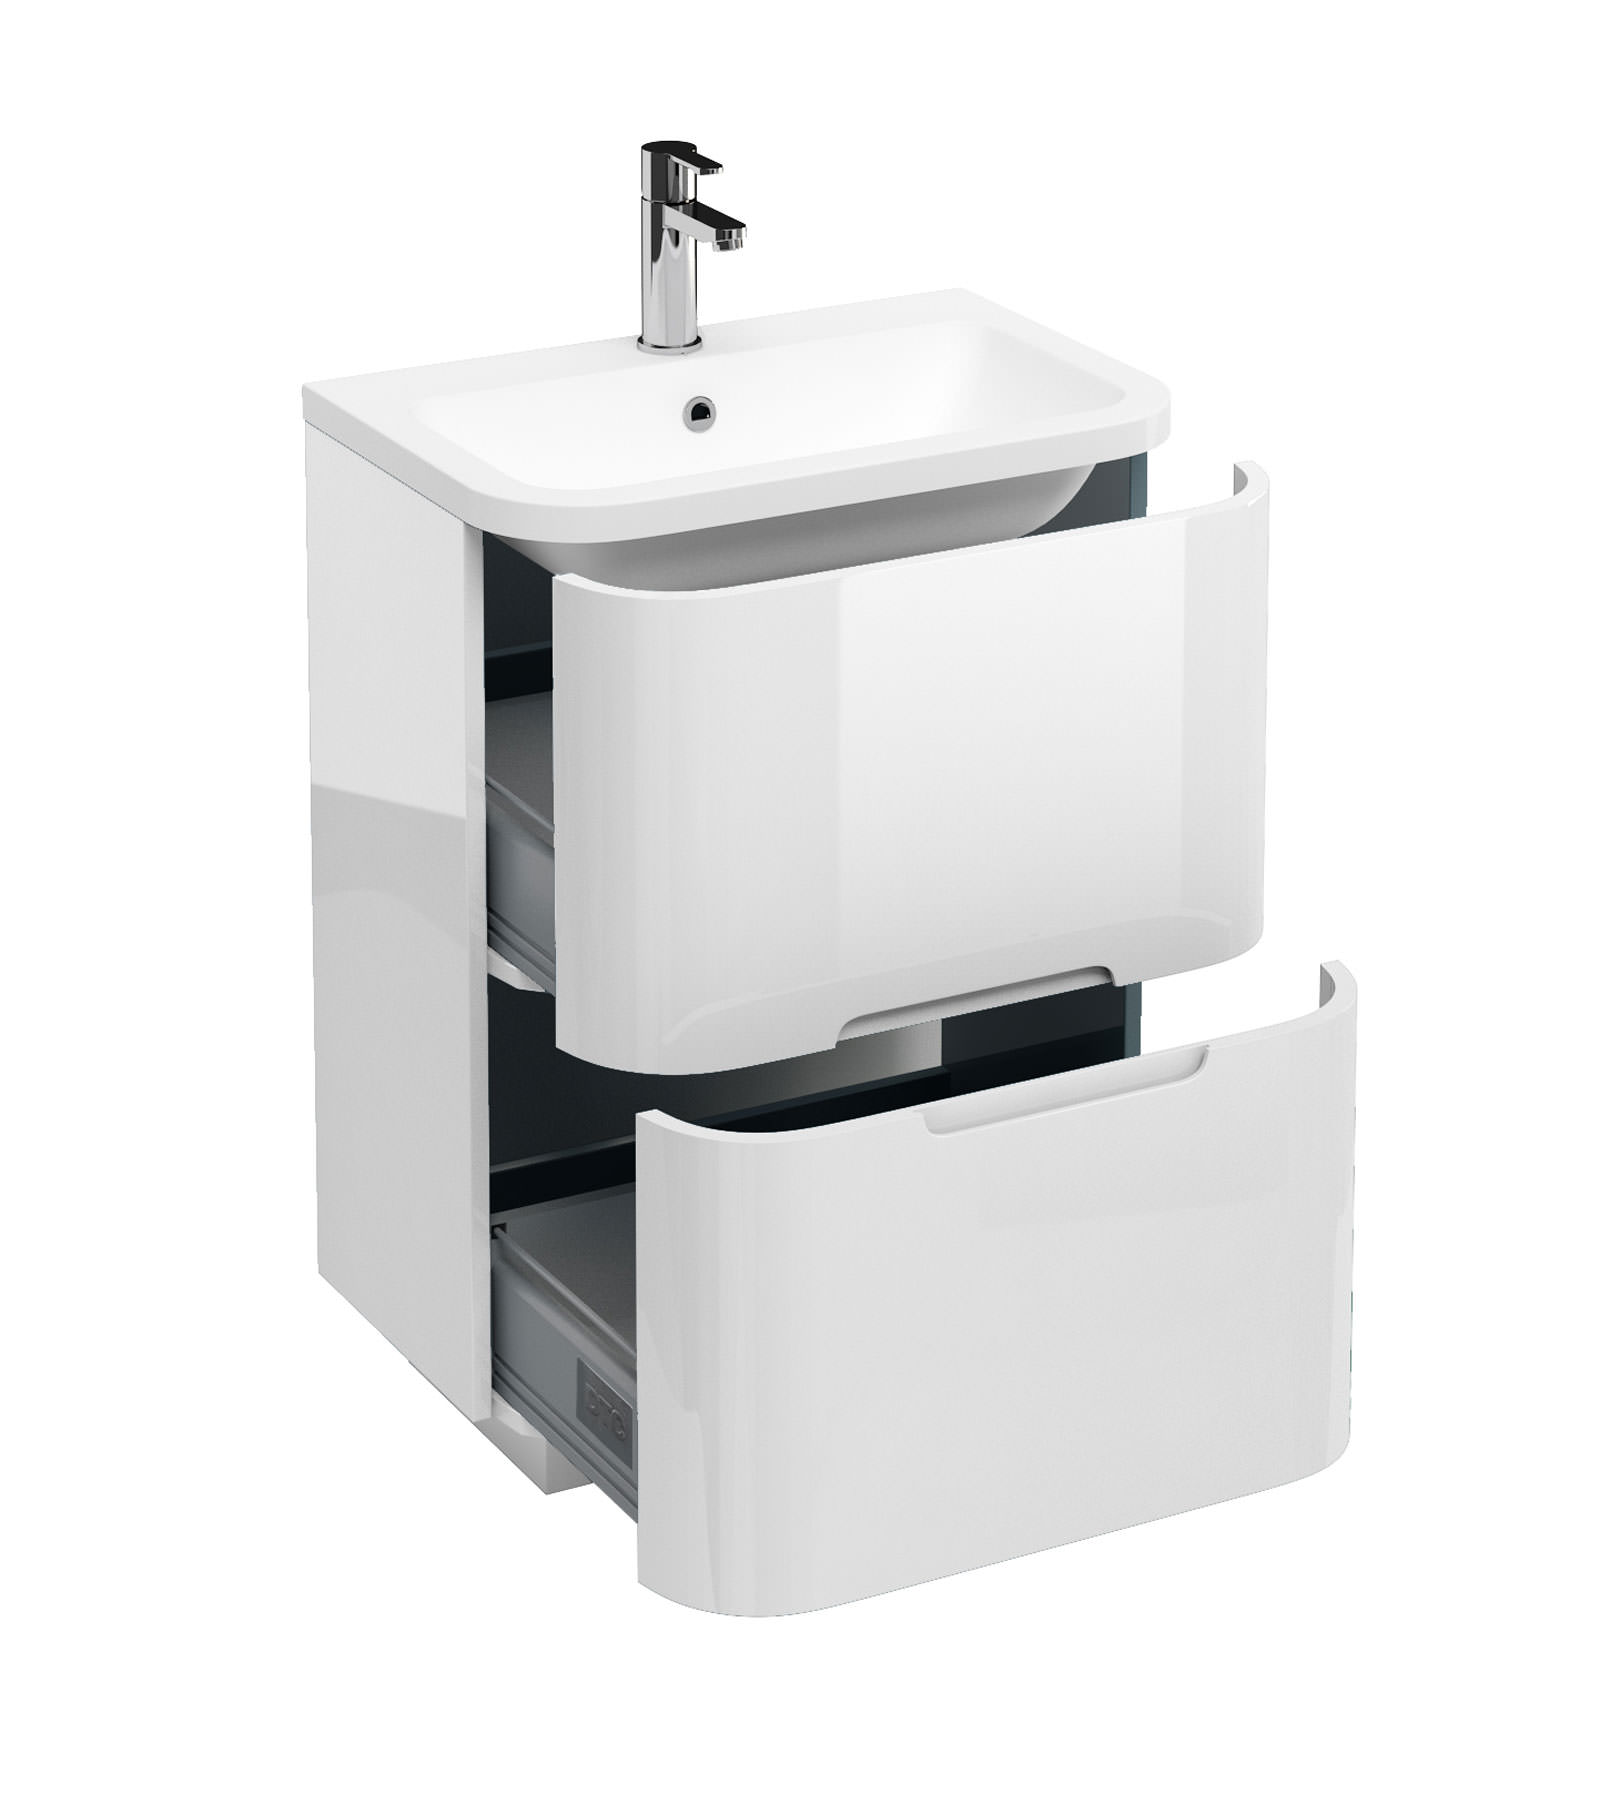 Aqua cabinets compact 600mm white 2 drawer floor unit with for Bathroom cabinets 40cm wide